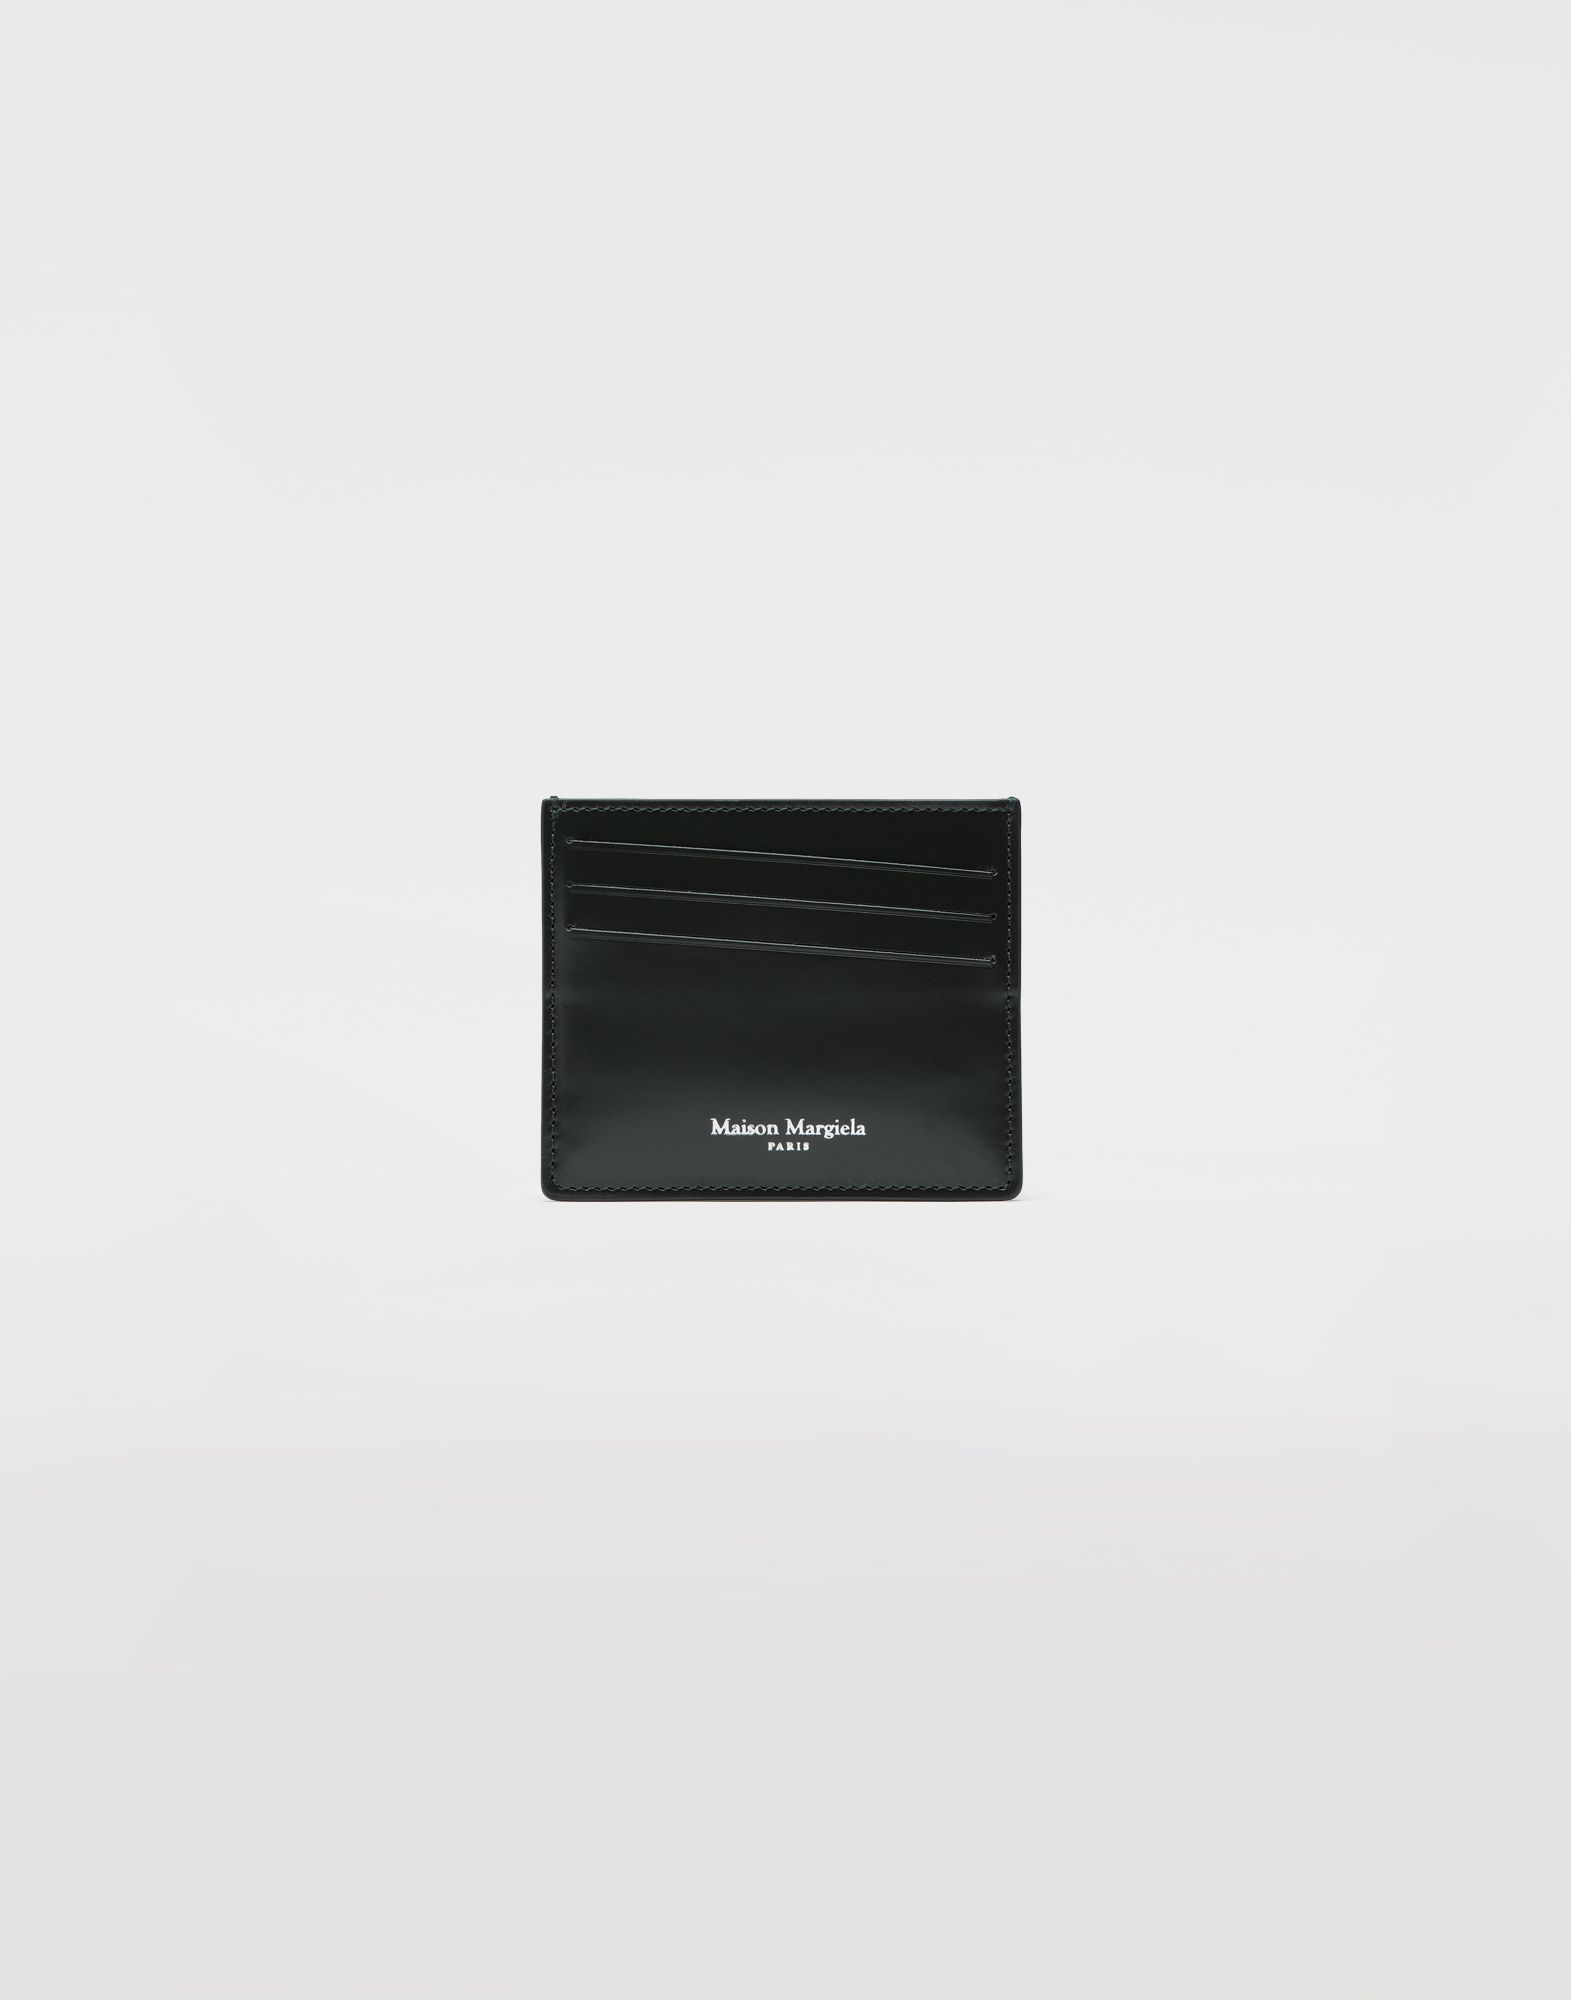 MAISON MARGIELA Calfskin card-holder Wallets Man f